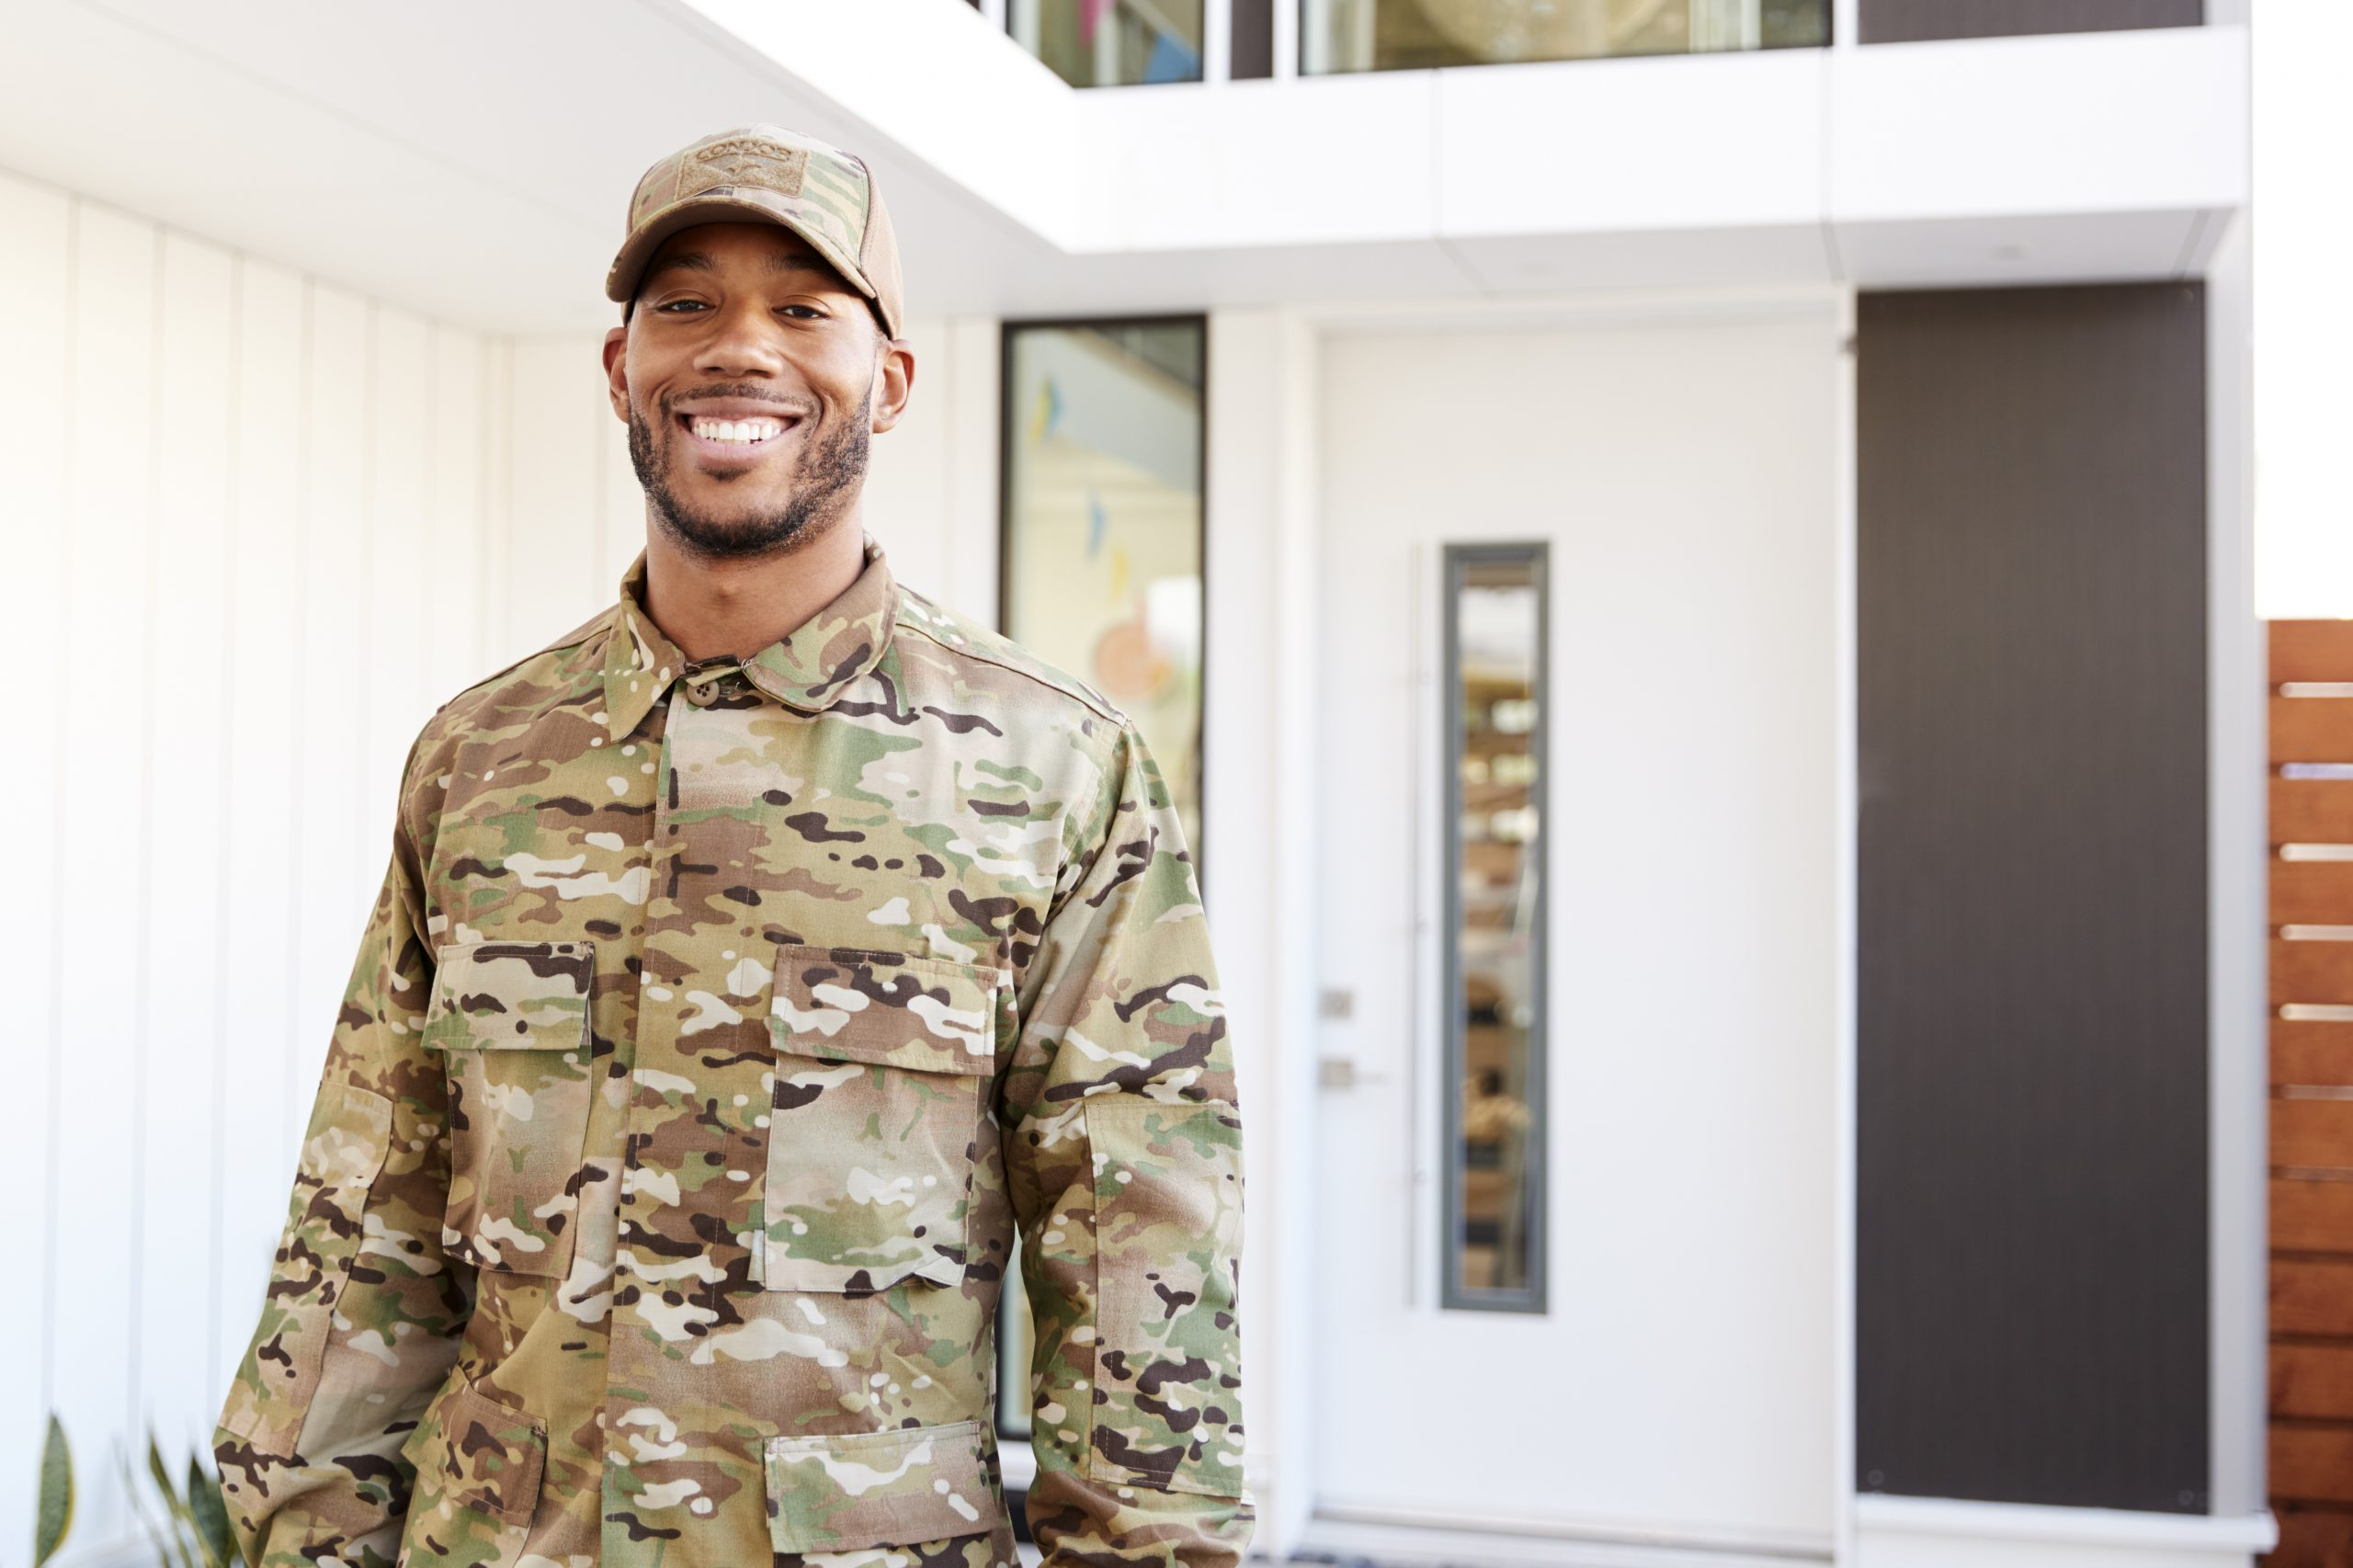 Male wearing camouflage smiling outside an office building